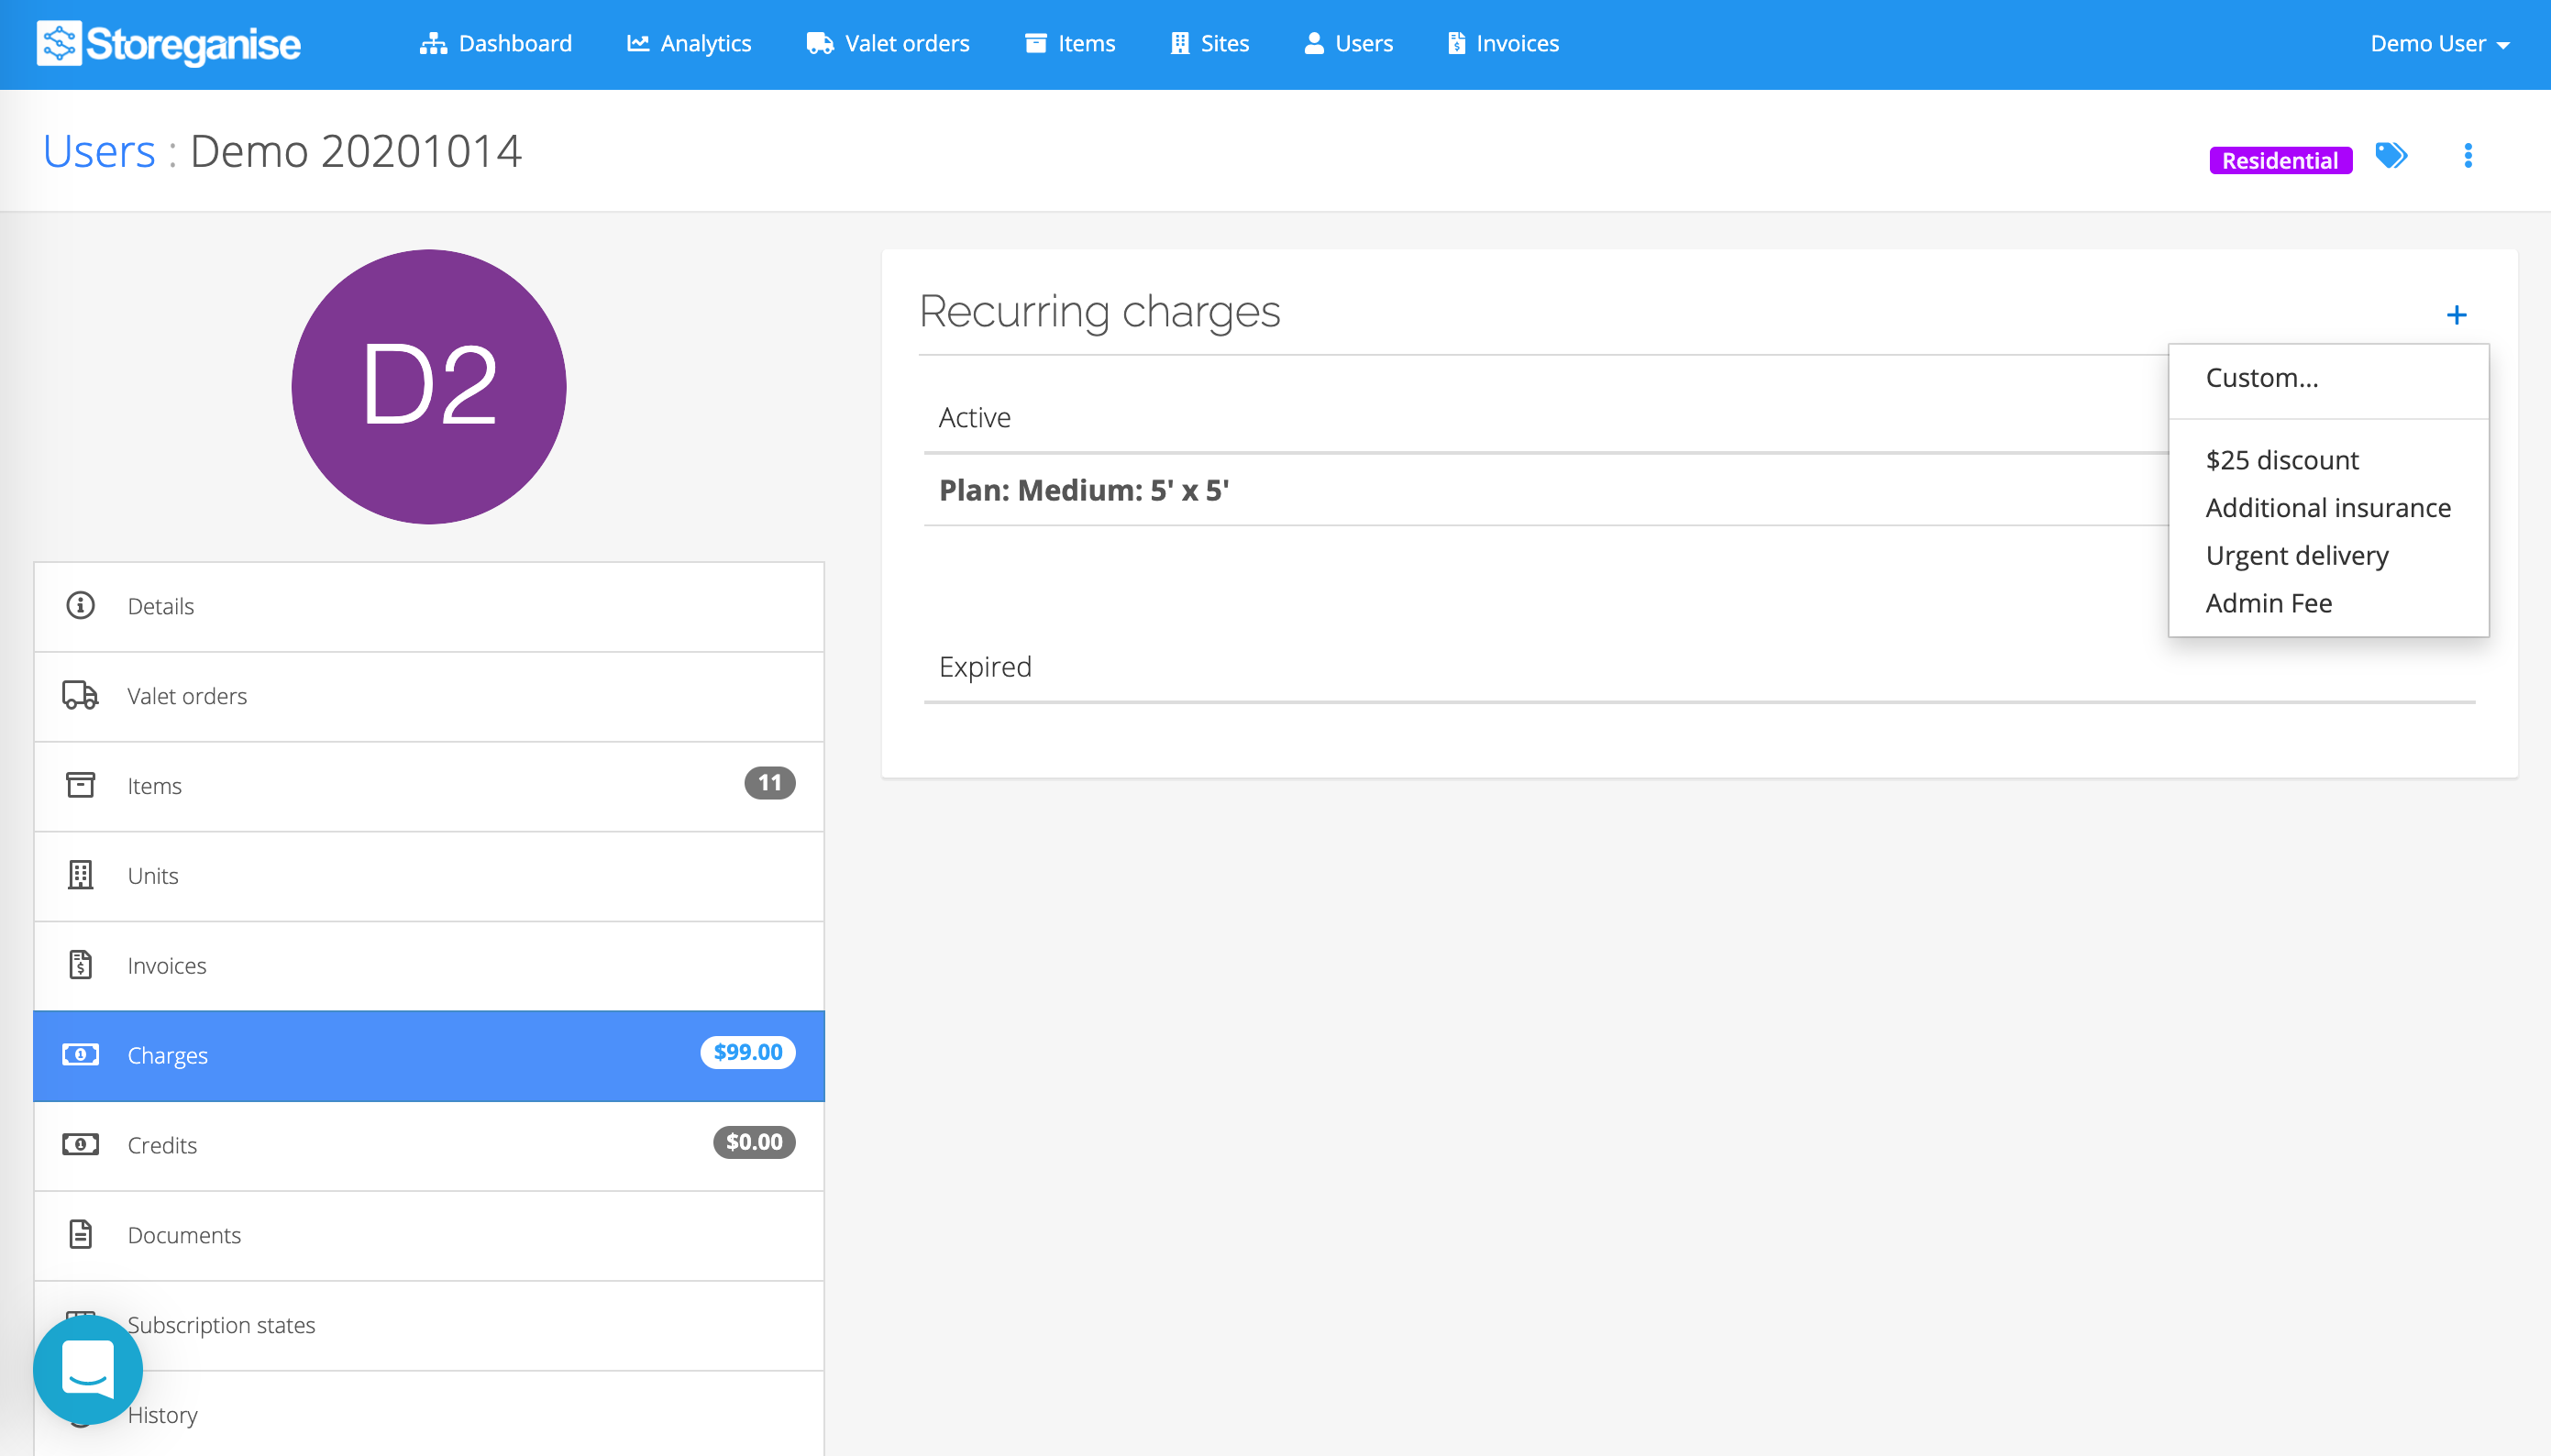 add recurring charges to a user's account